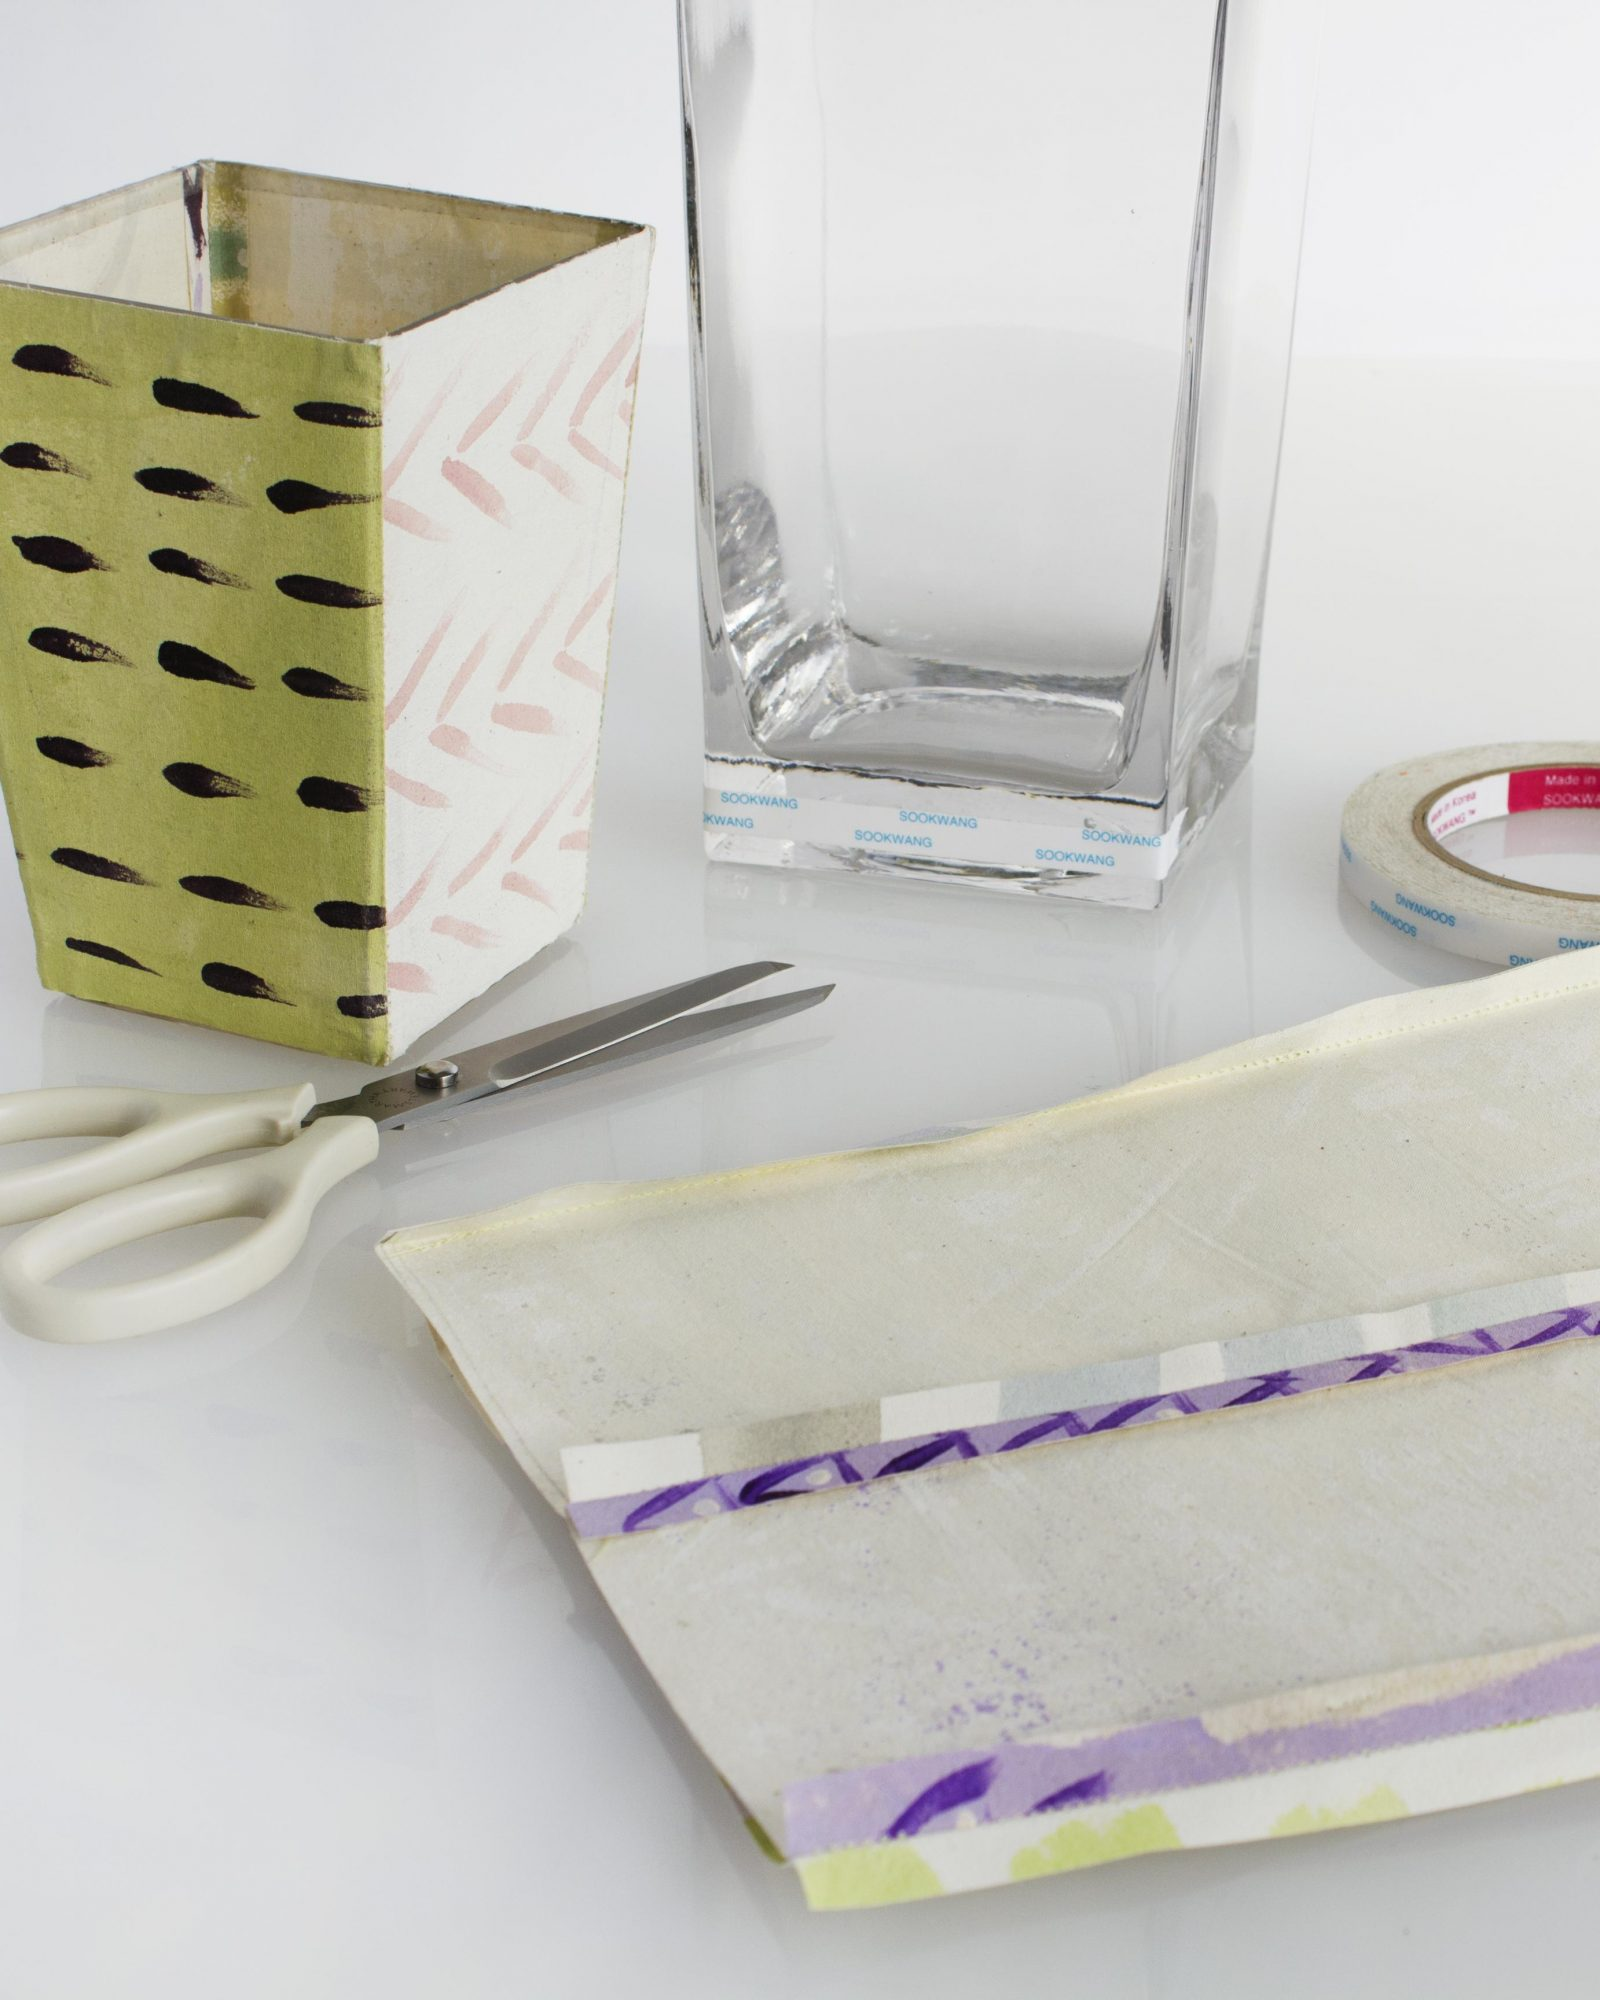 Sew and Attach Fabric to Vase